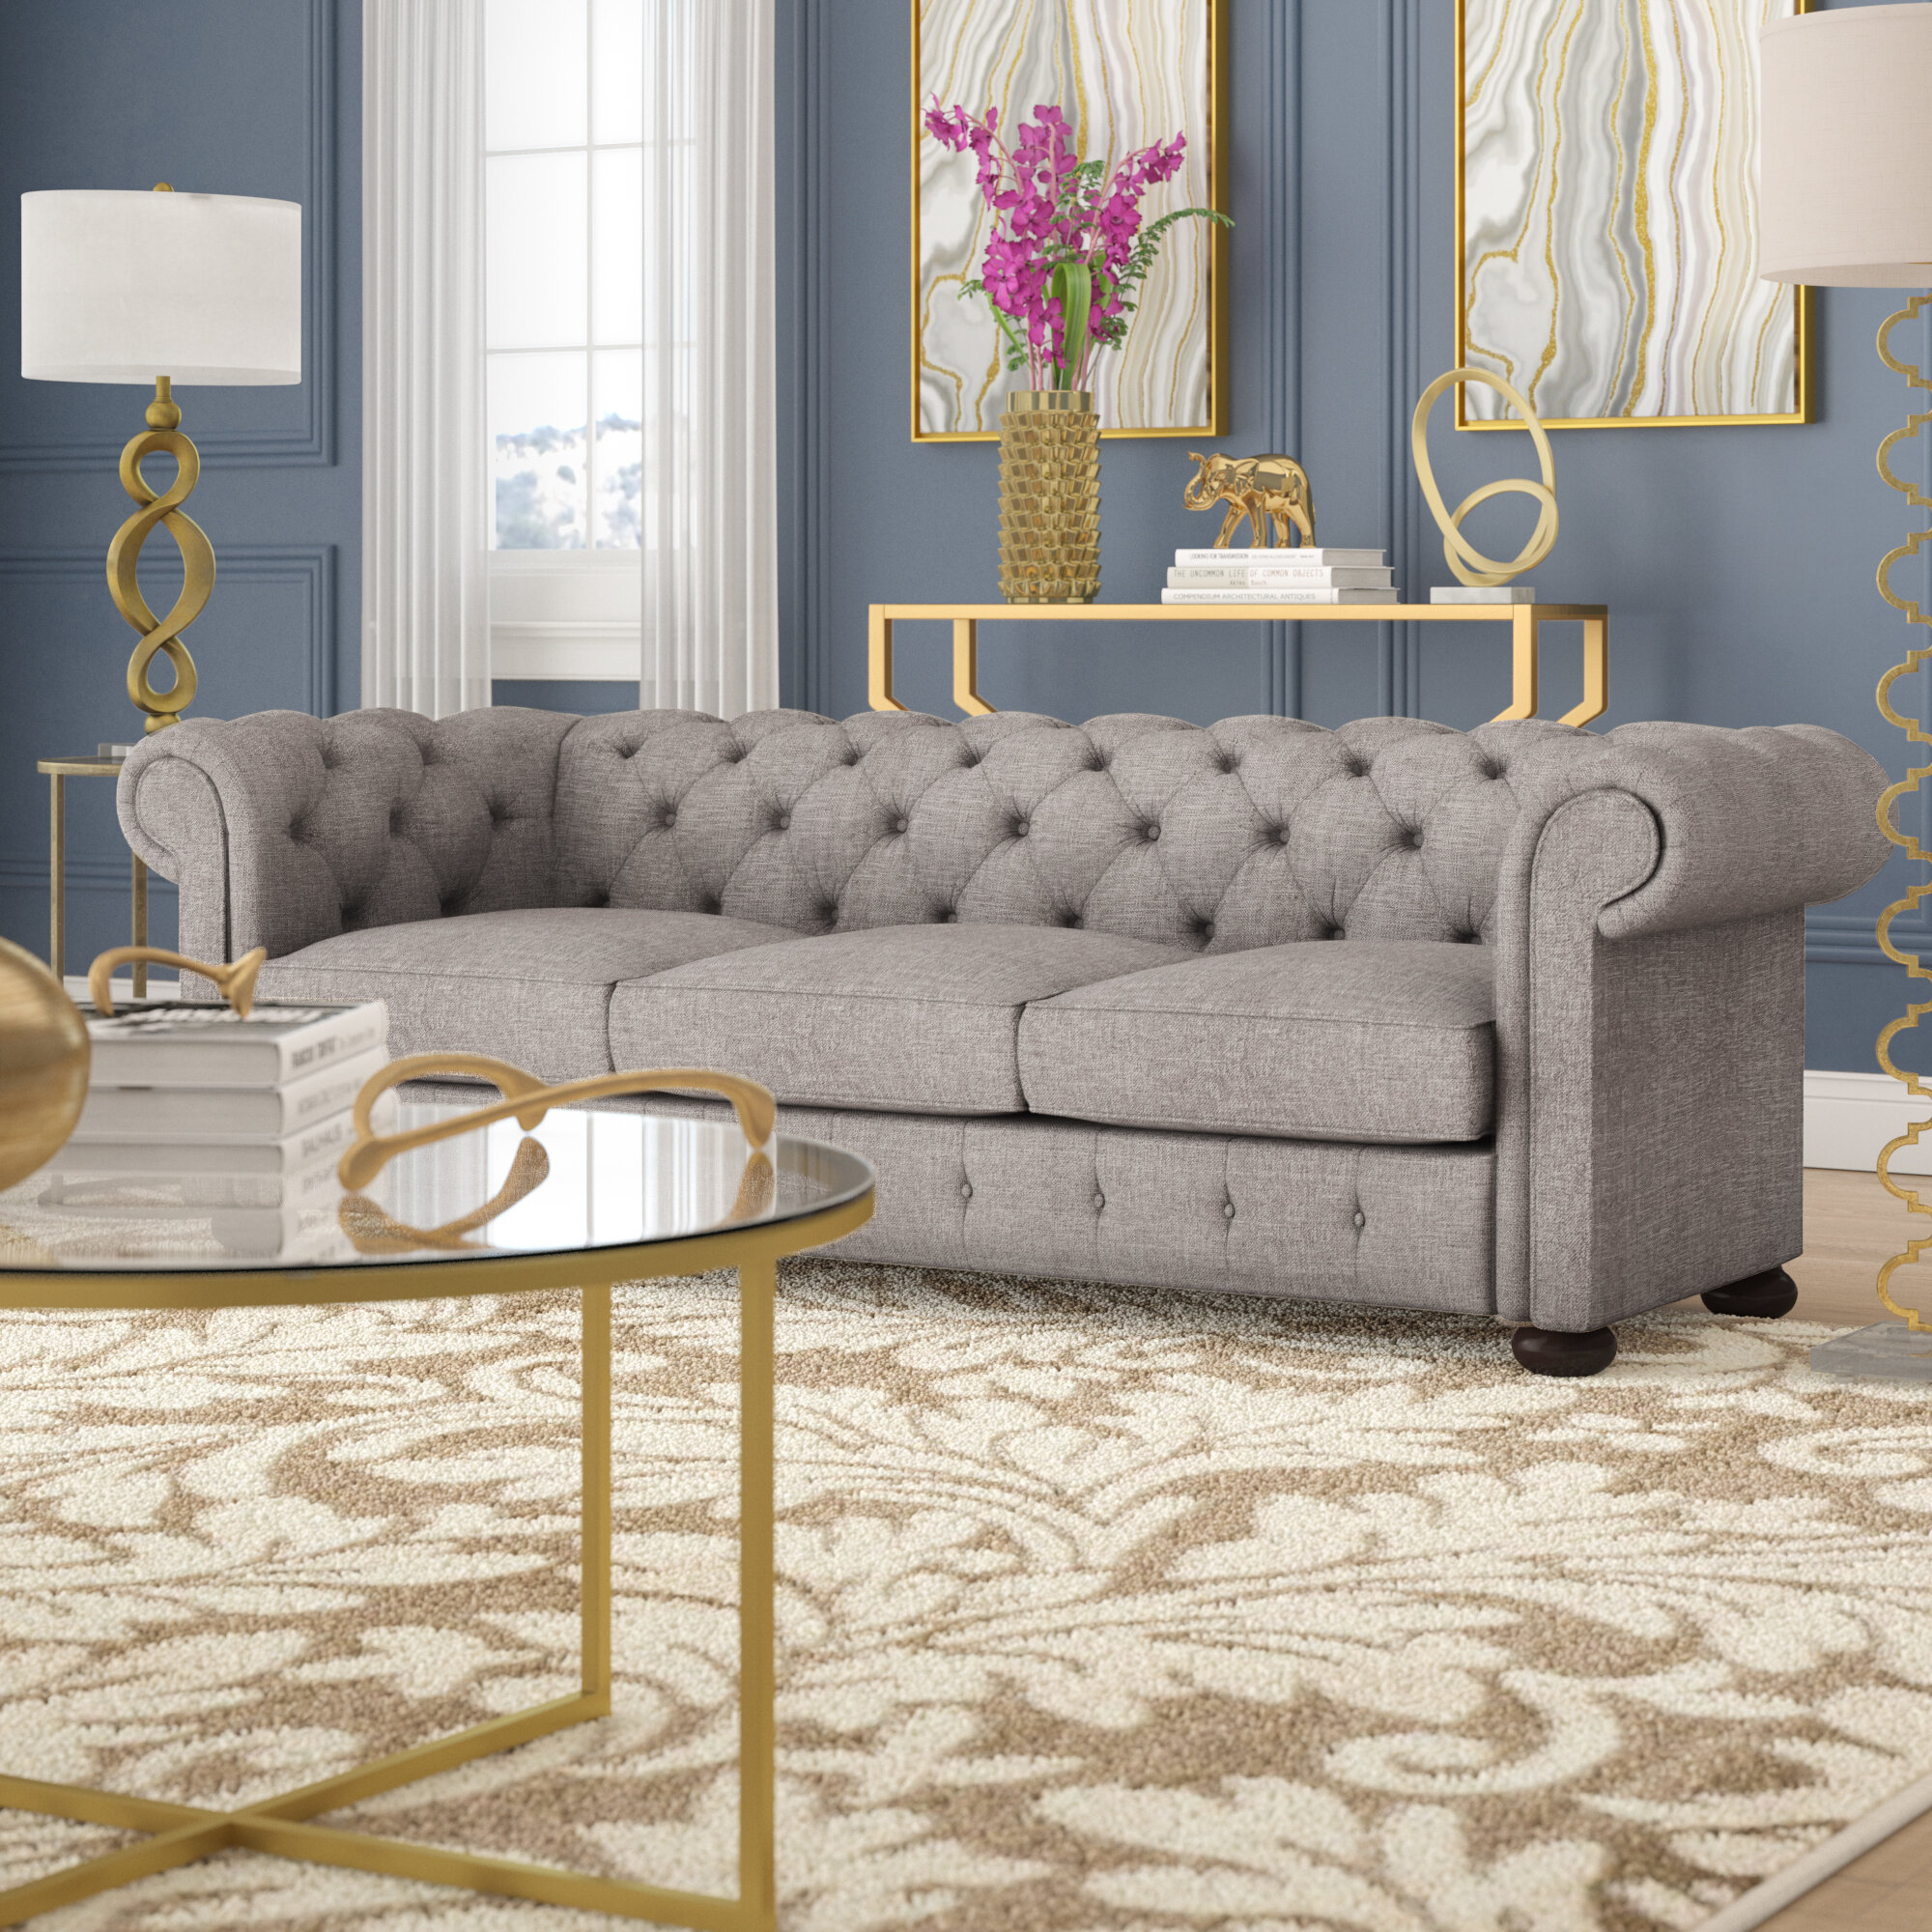 Willa arlo interiors vegard chesterfield sofa reviews wayfair